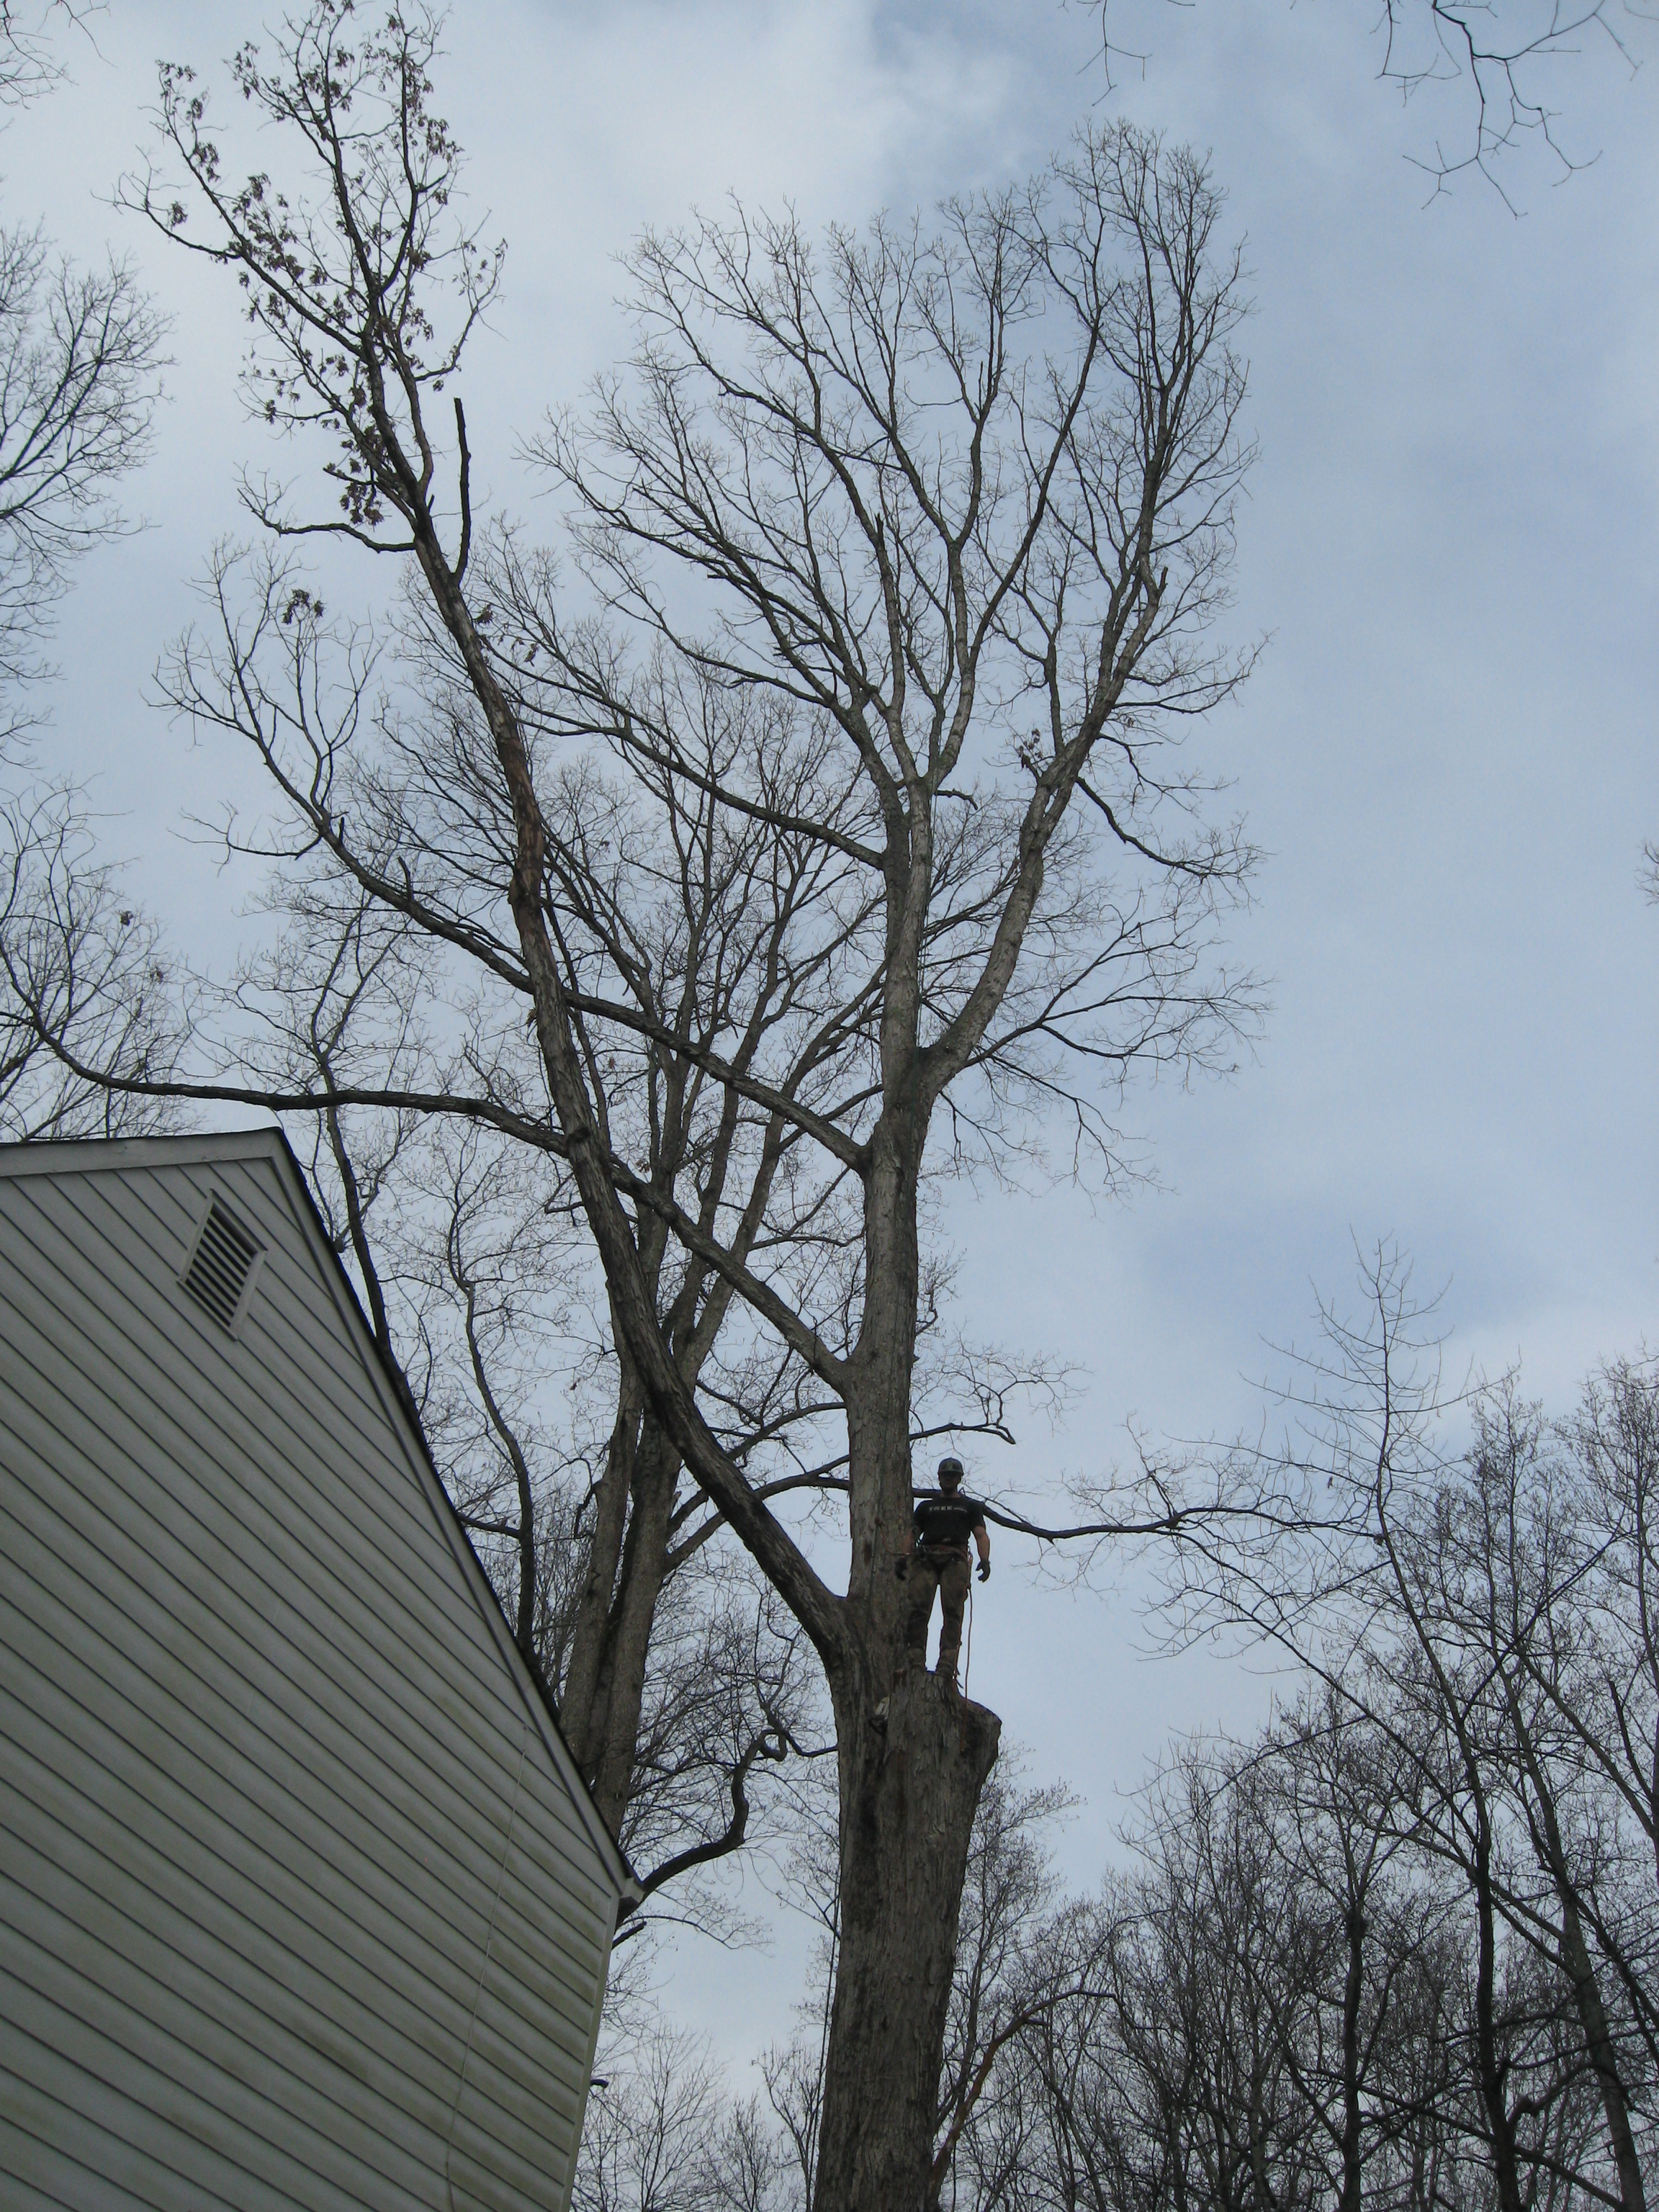 The white oak loomed over the house owned by Eutree's client.